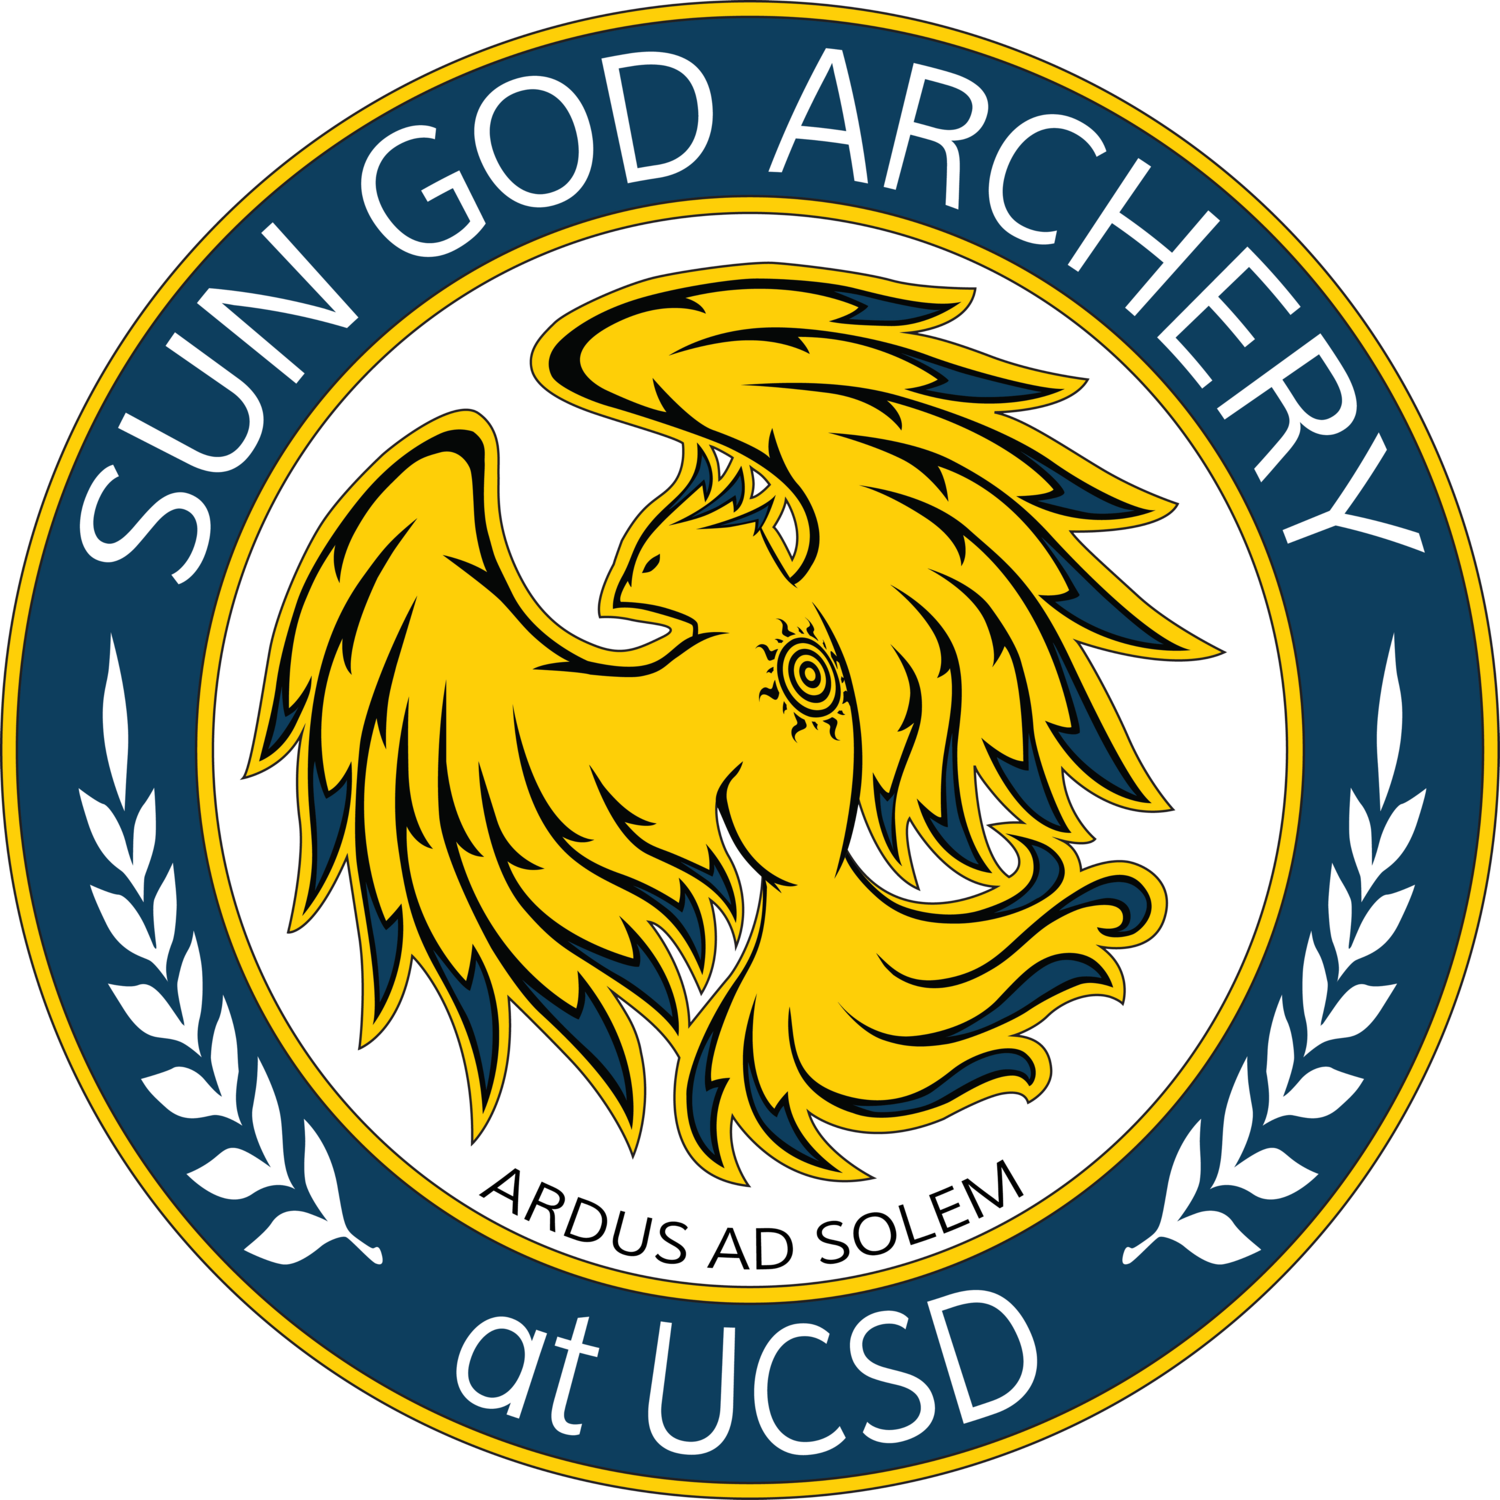 Sun God Archery at UCSD